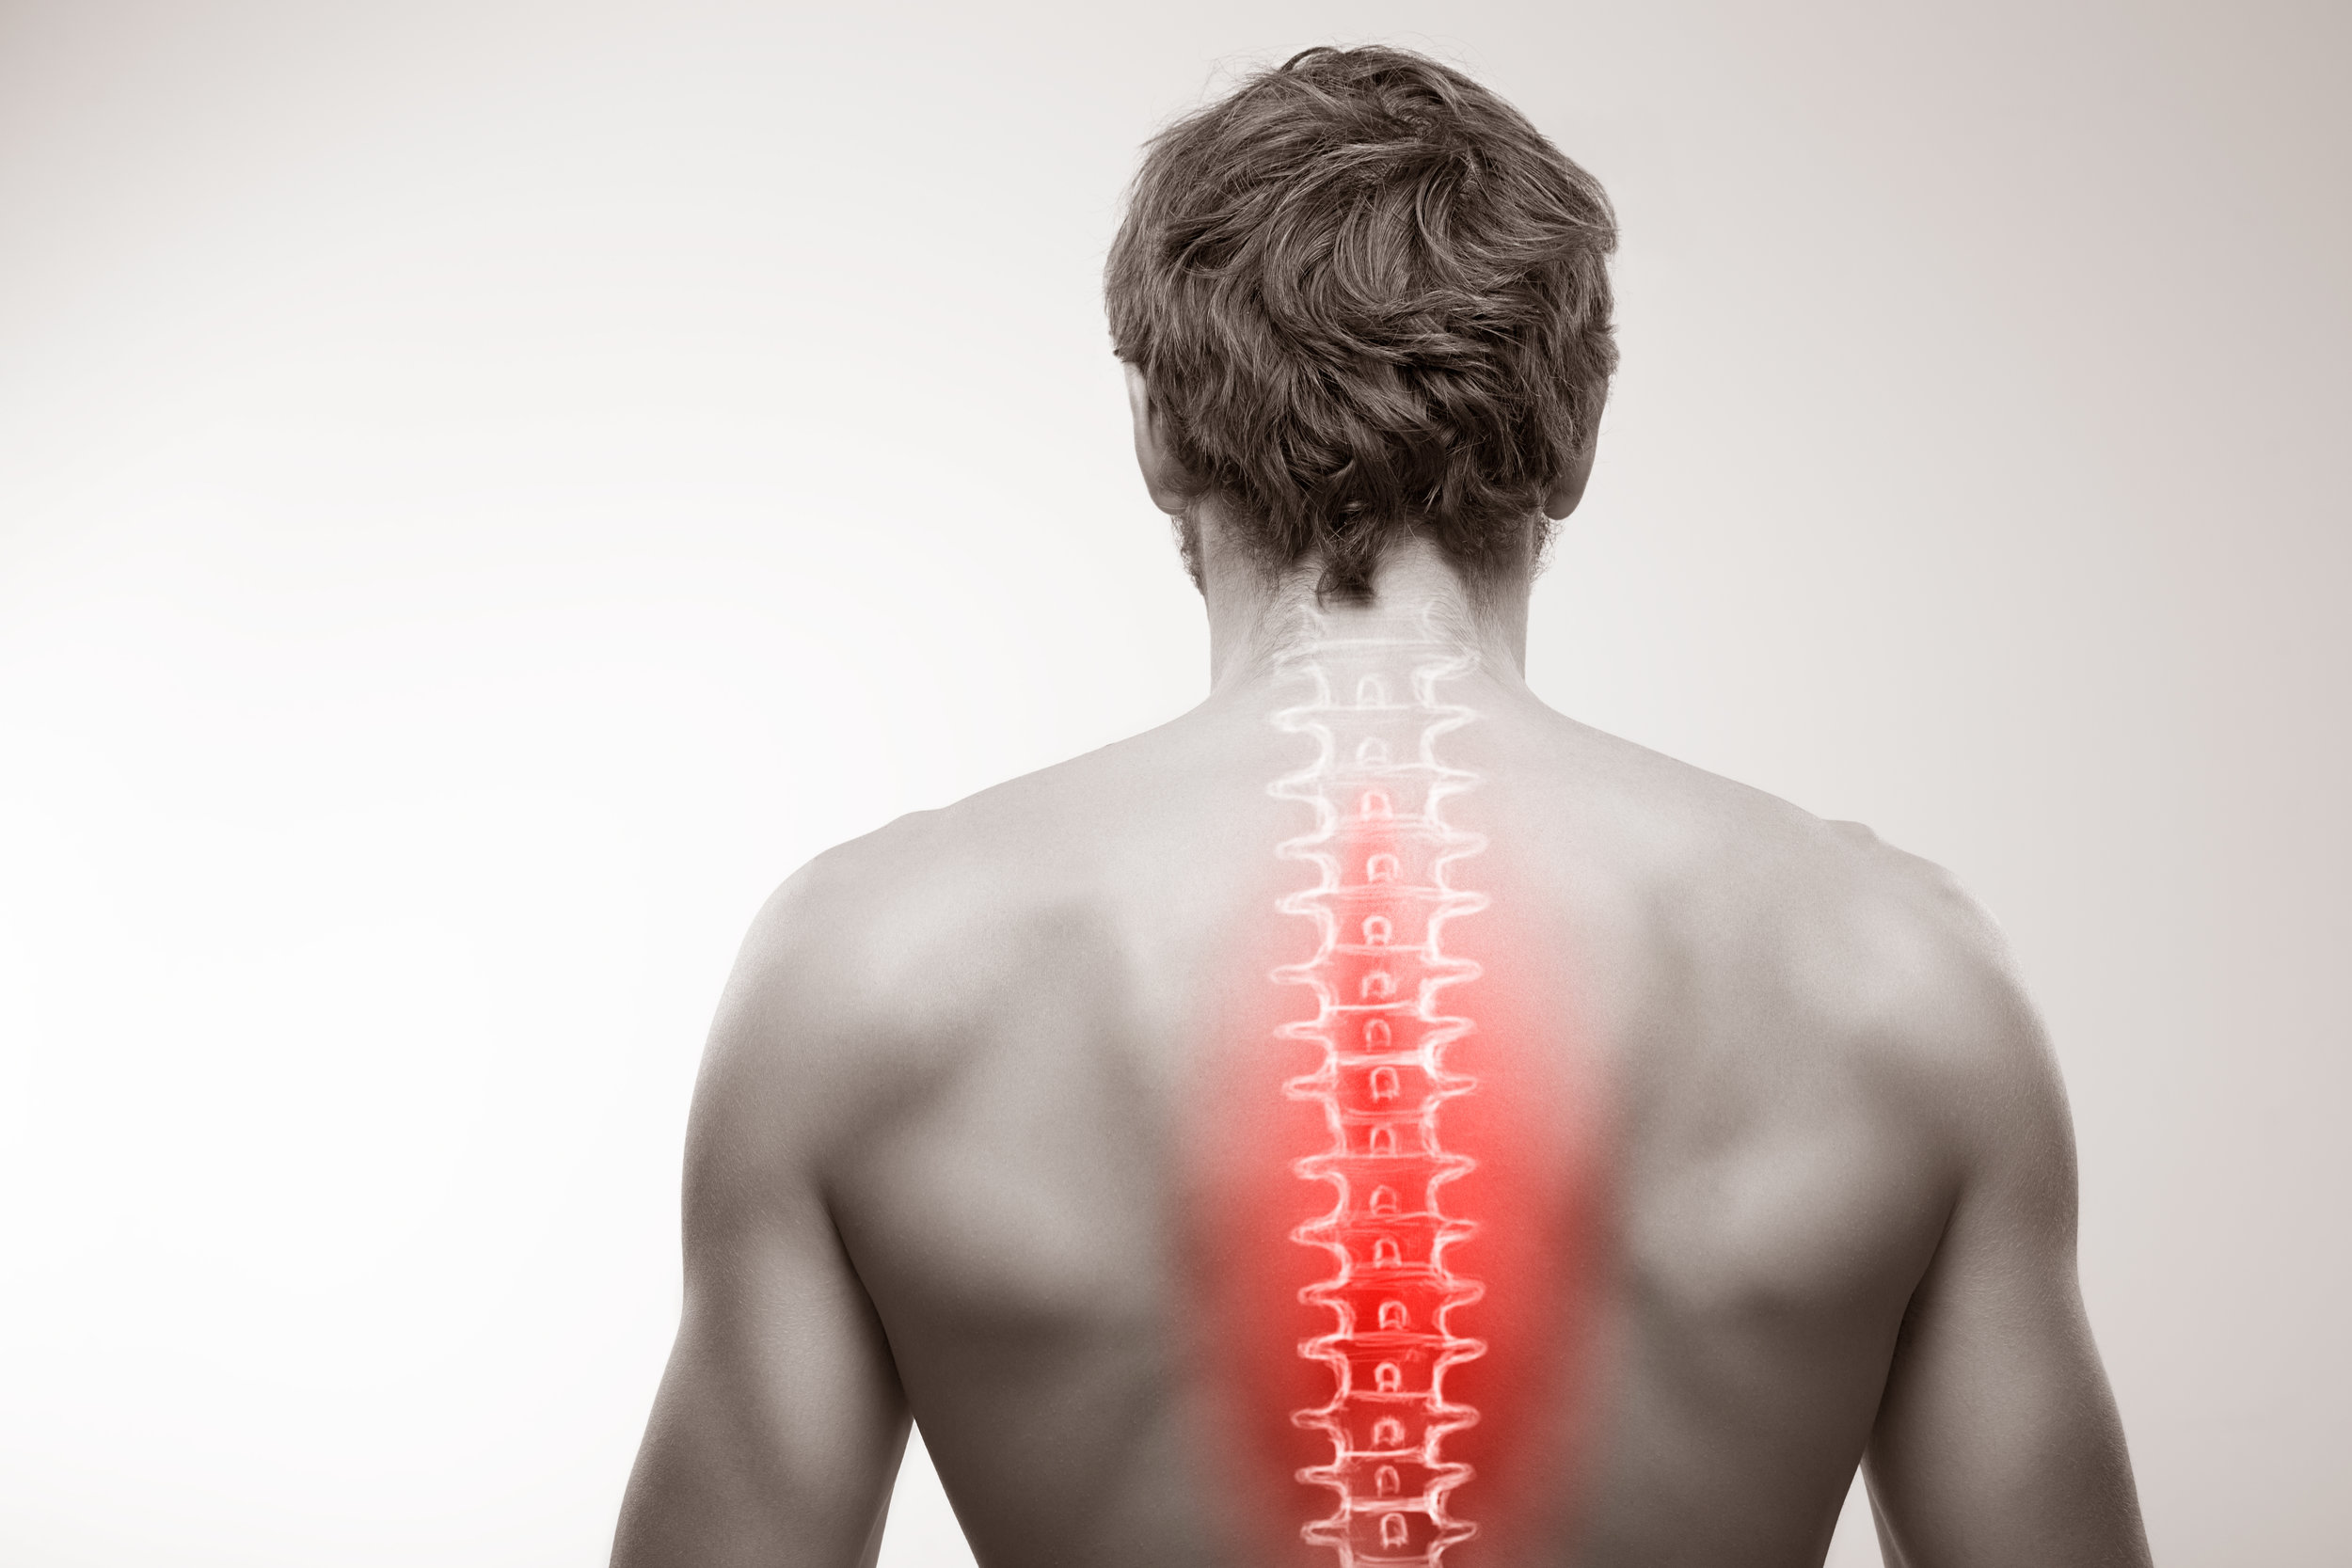 Nonsurgical Spinal Decompression is an advanced technology that can repair a number of conditions, including sciatica, lumbar stenosis, and herniated, protruding, or bulging discs.